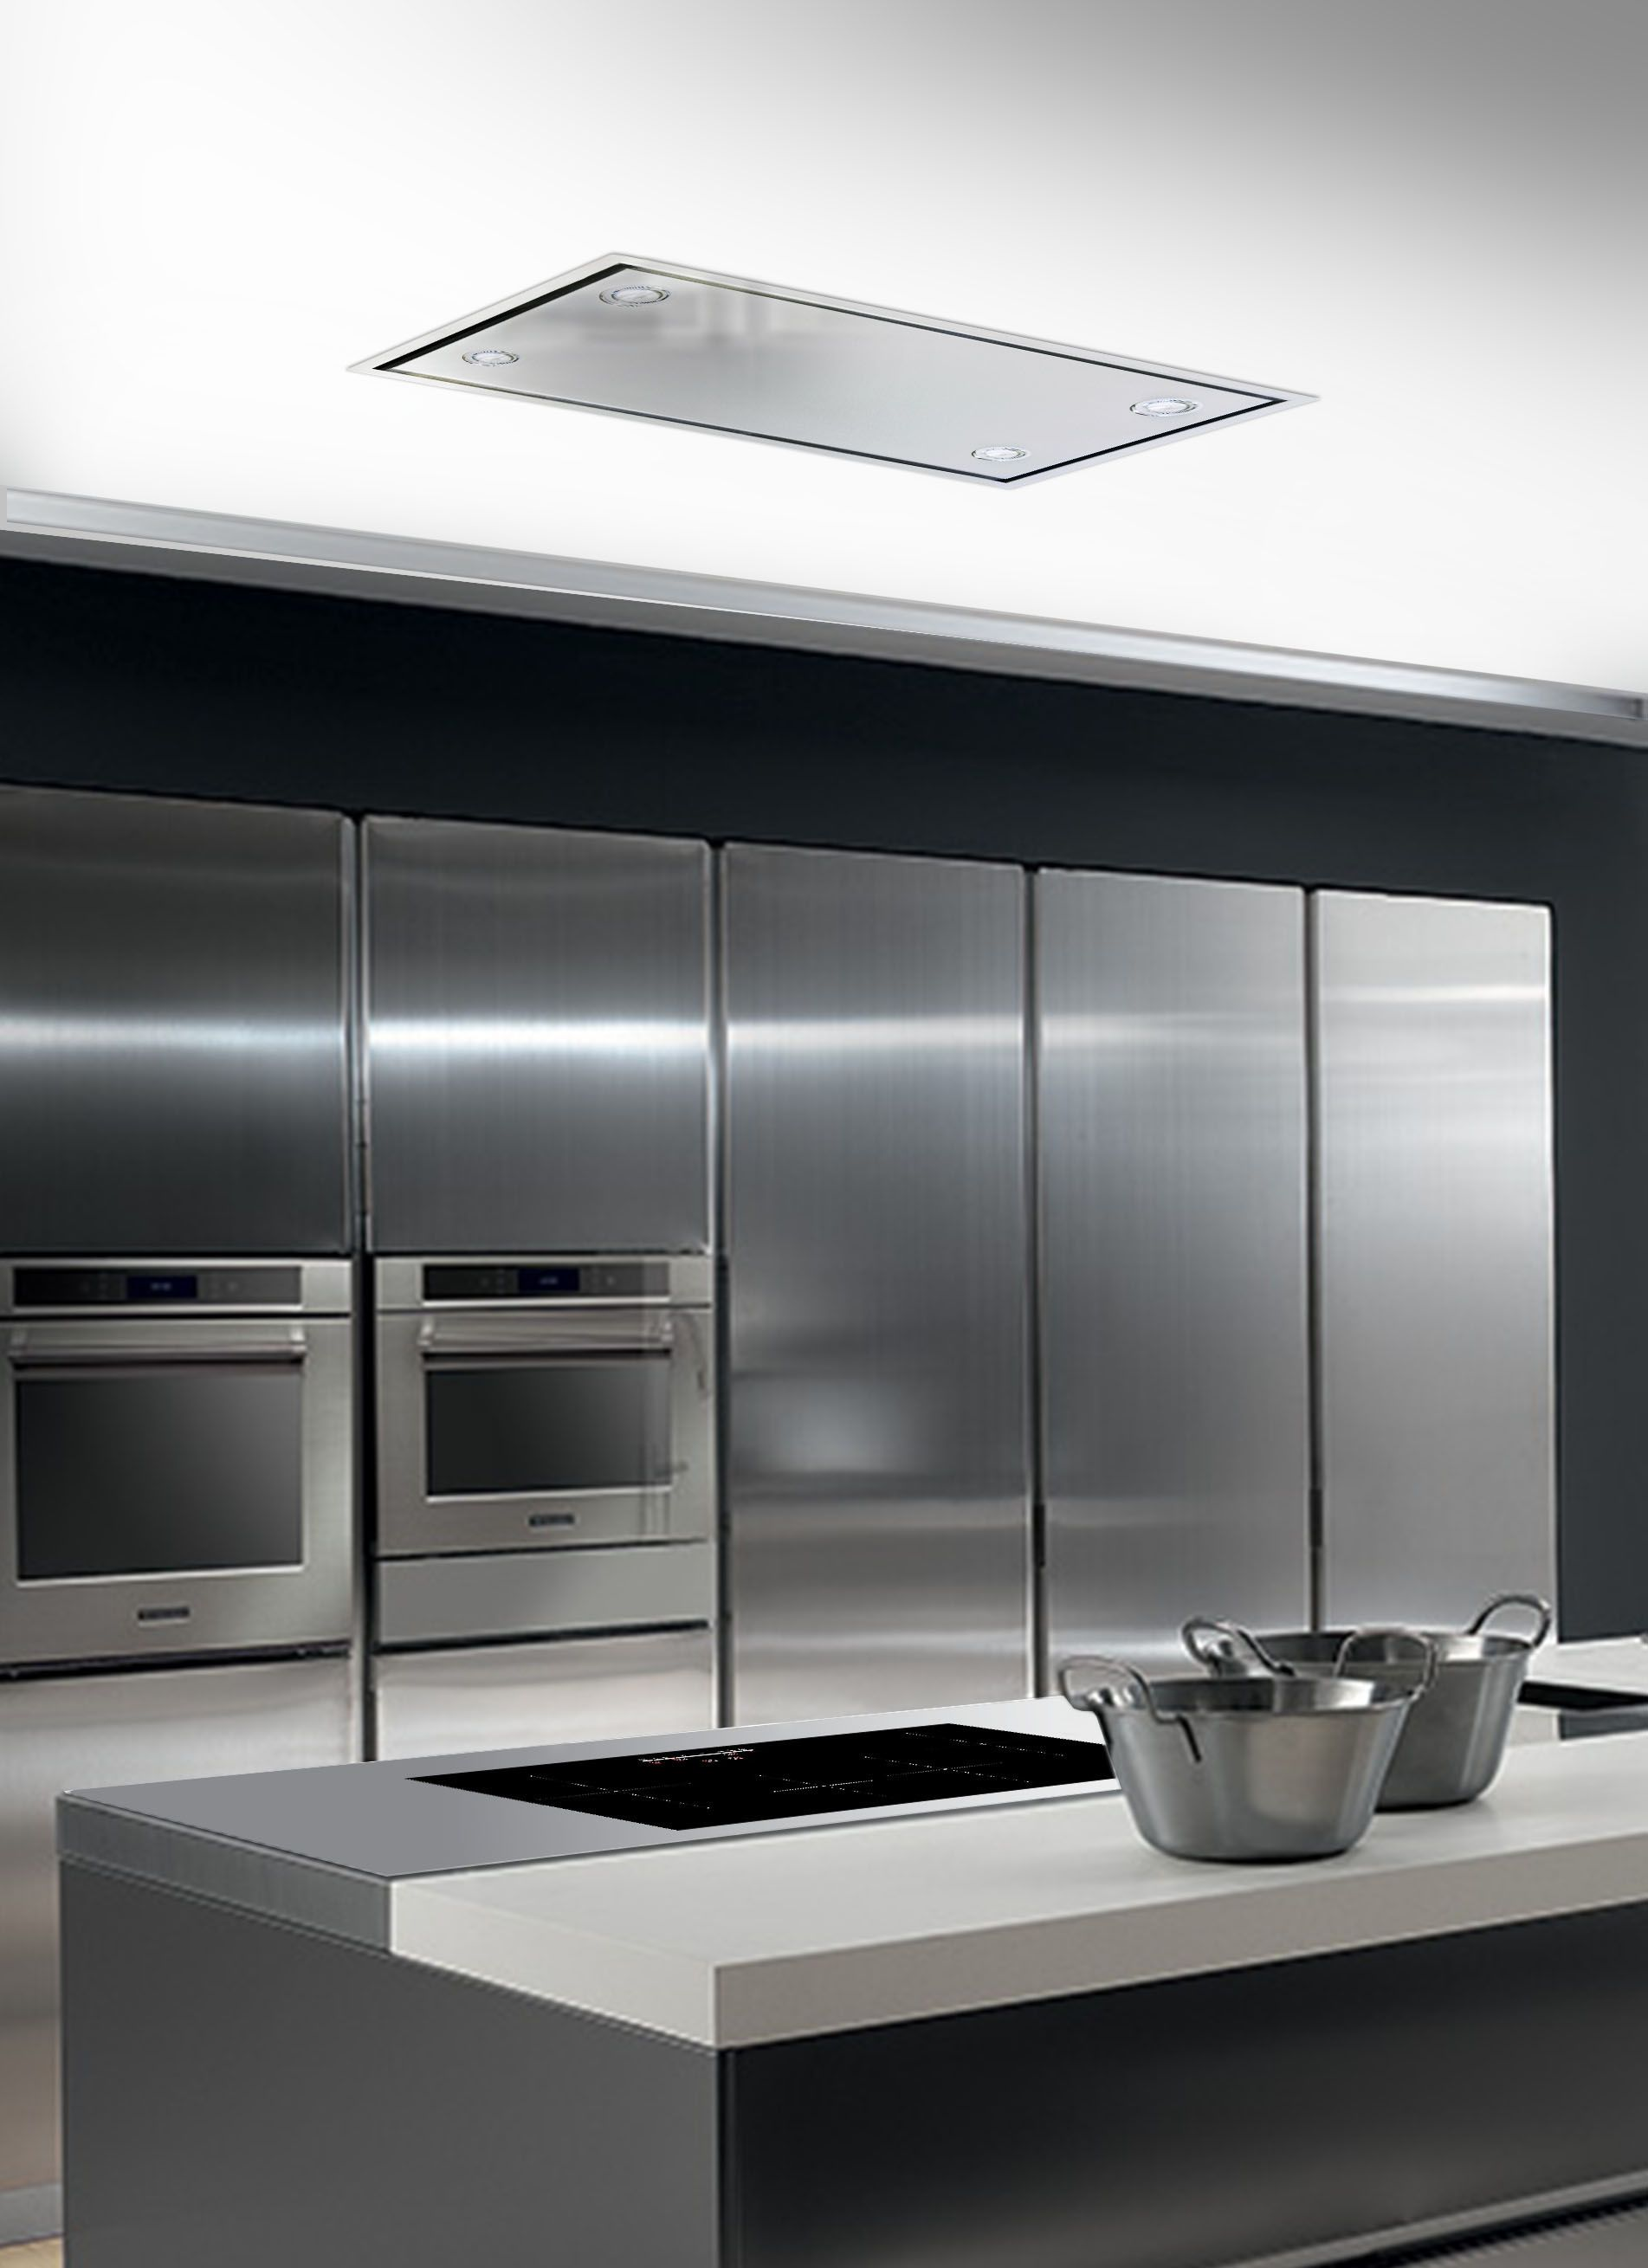 The Skyline flush mounted ceiling extractor fits